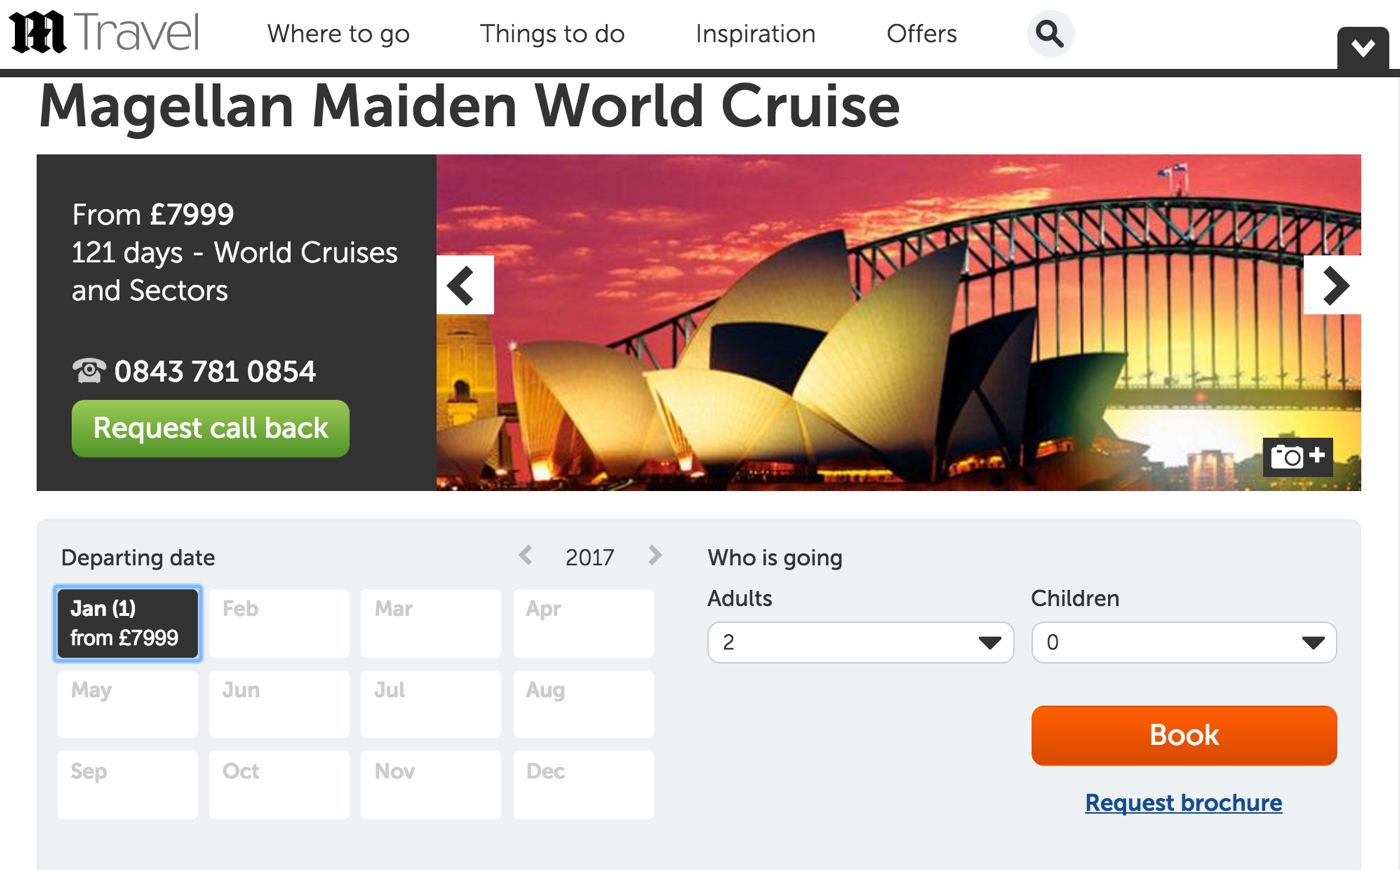 Product details with customised booking flow